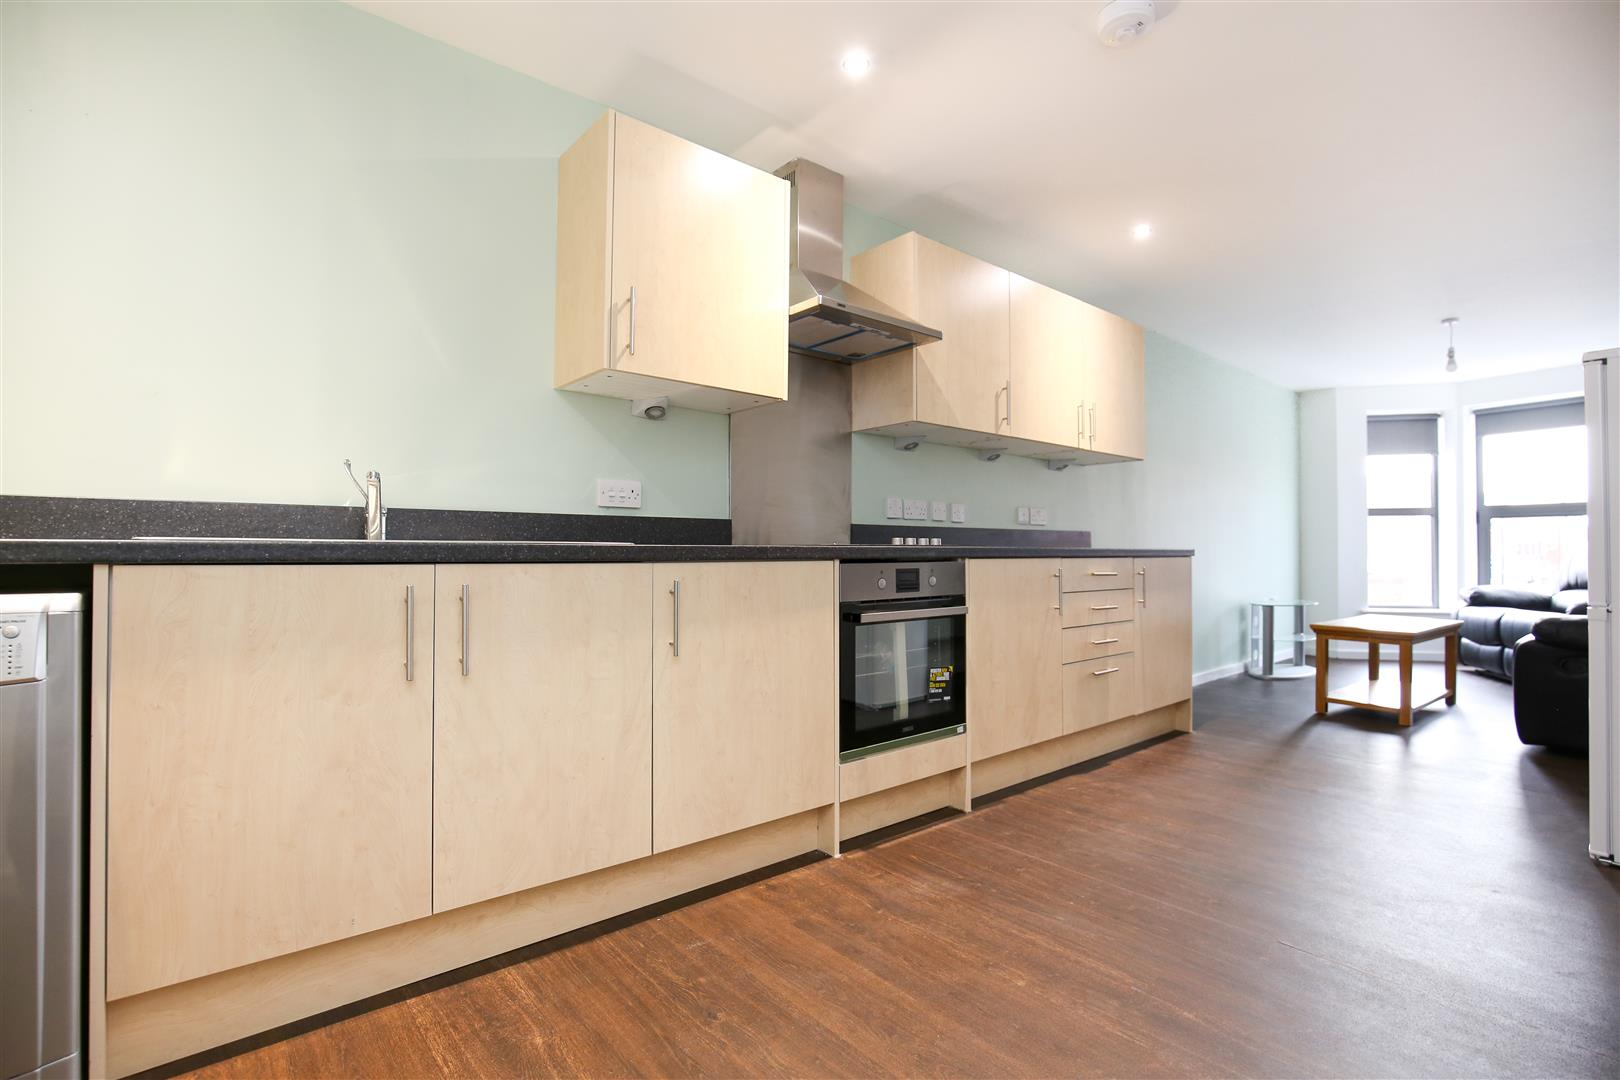 2 bed apartment to rent in Newcastle Upon Tyne, NE6 5BL  - Property Image 3